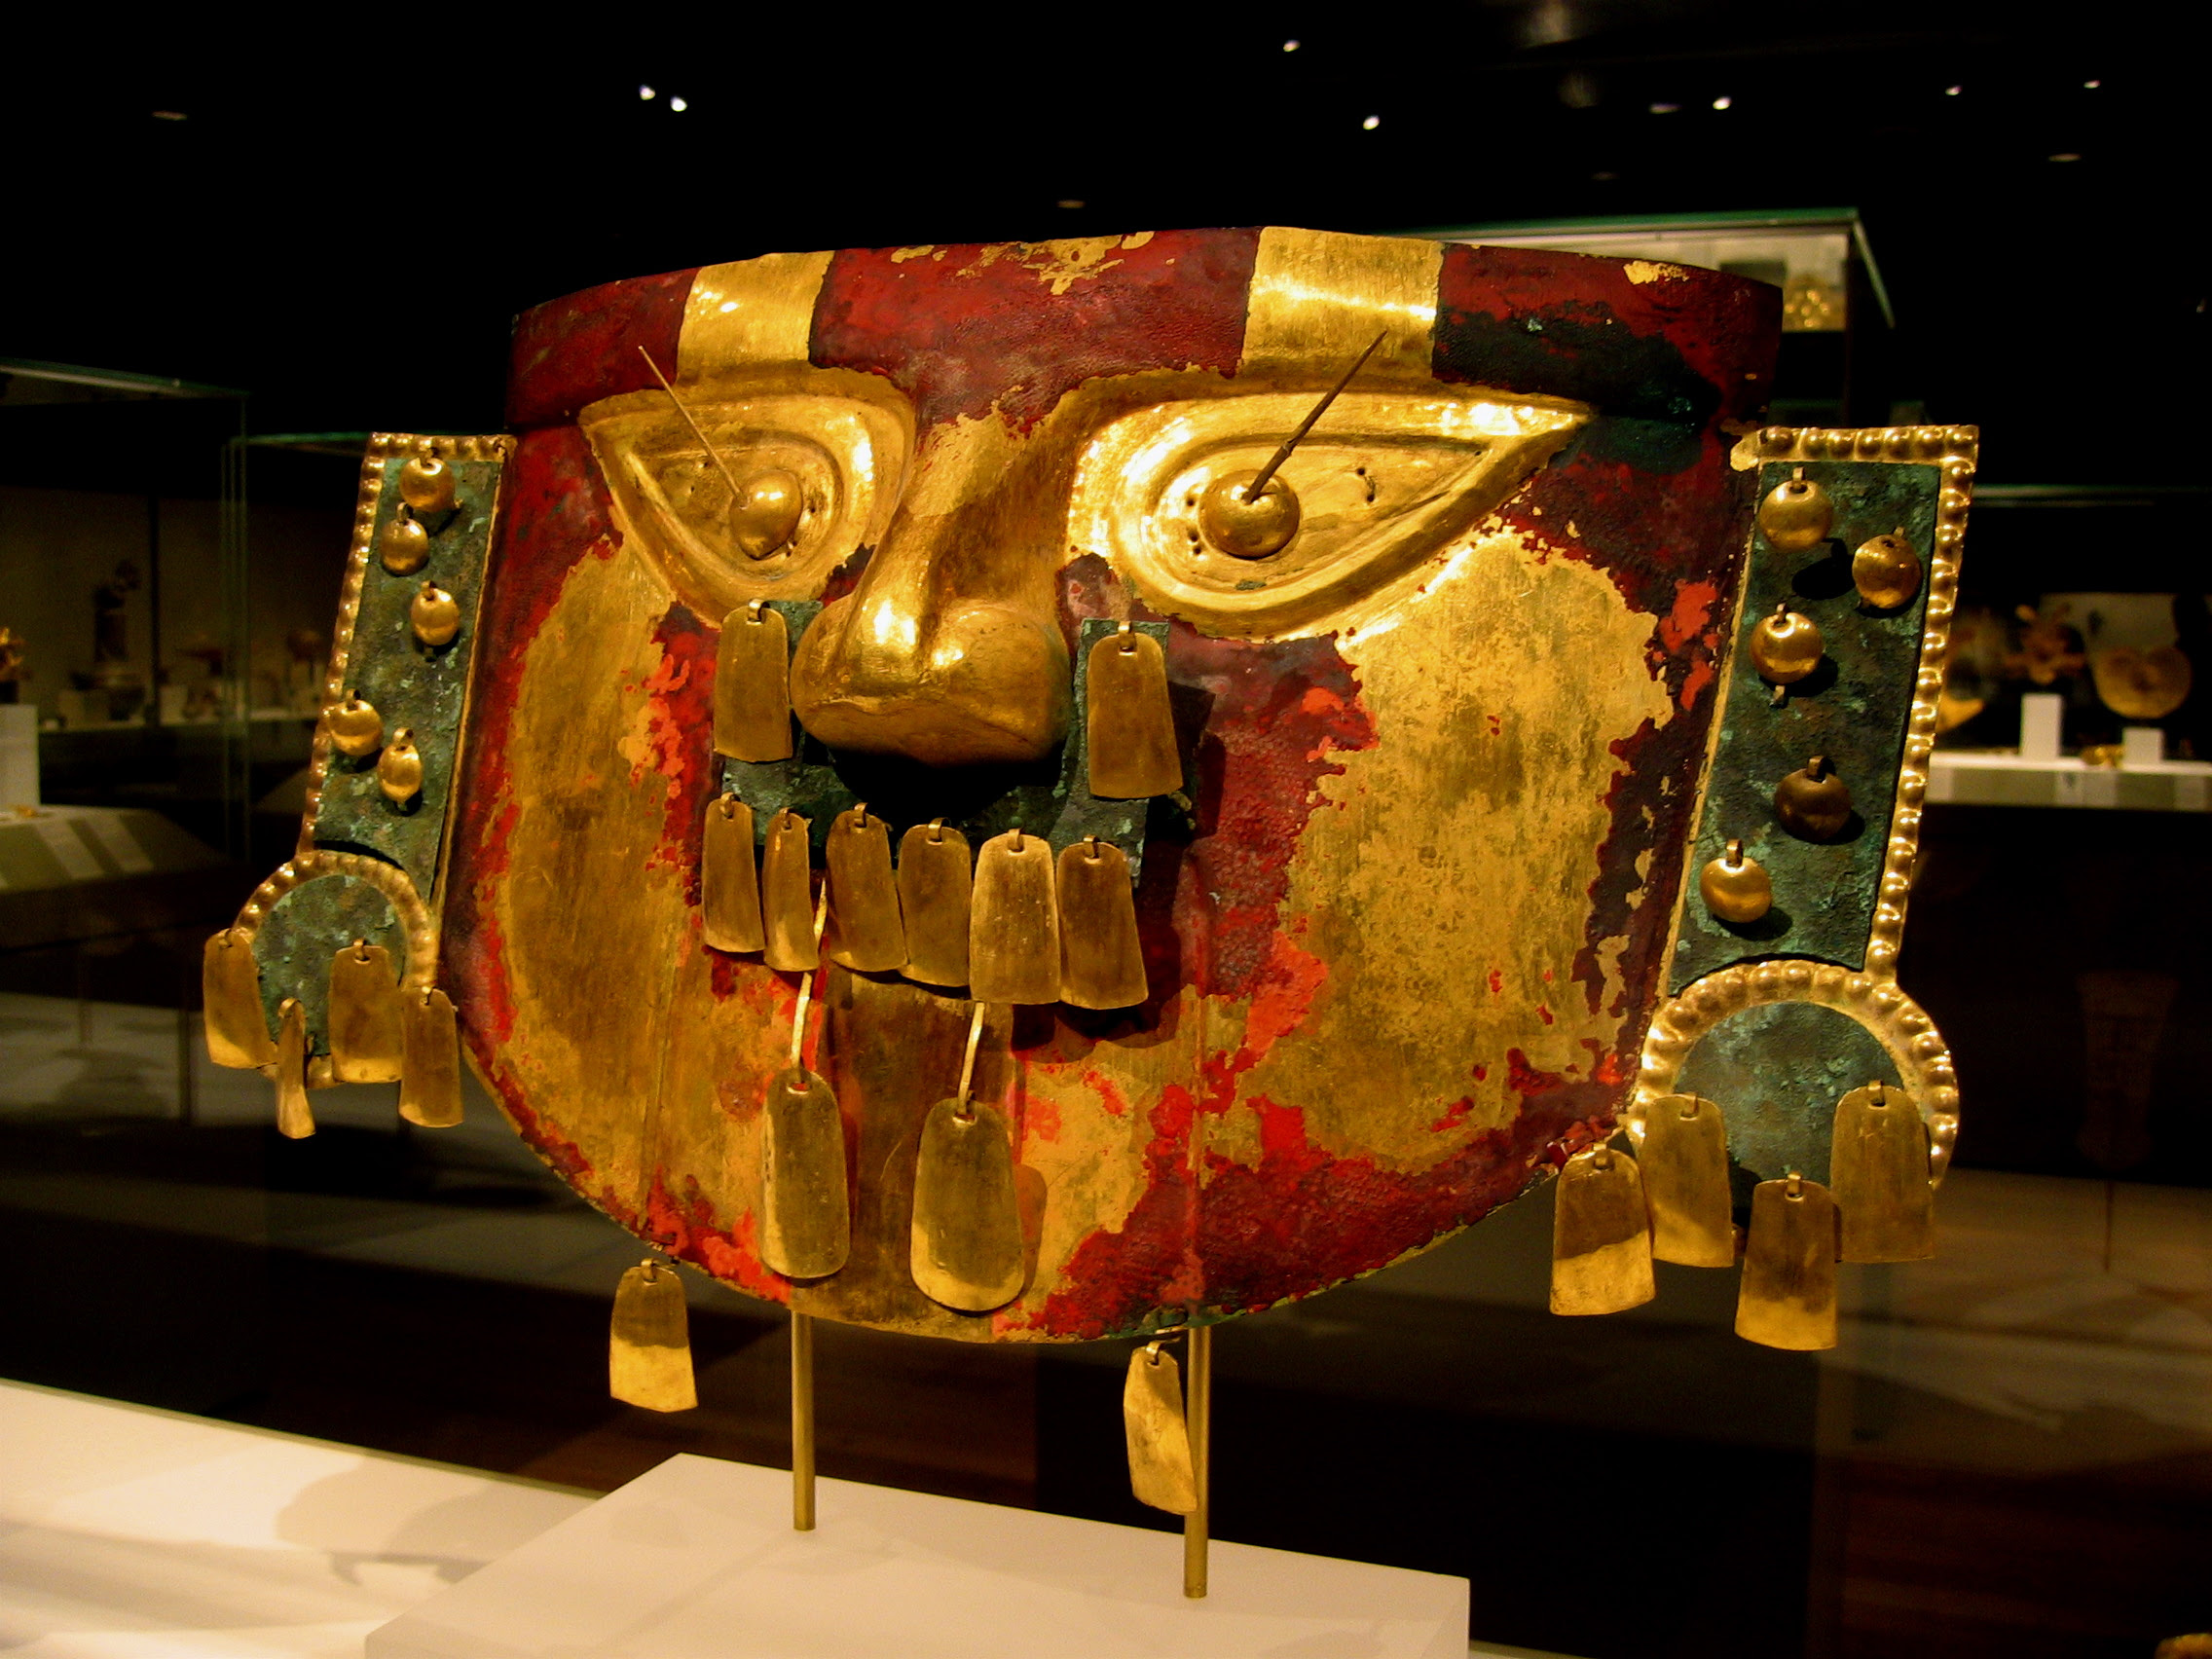 Funerary Mask, 9th-11th century Peru; (Lambayeque) Hammered gold with cinnabar and copper overlays, cinnabar; H. 11 1/2 in. (29.2 cm) Gift and Bequest of Alice K. Bache, 1974, 1977 (1974.271.35) (Wikimedia Commons)